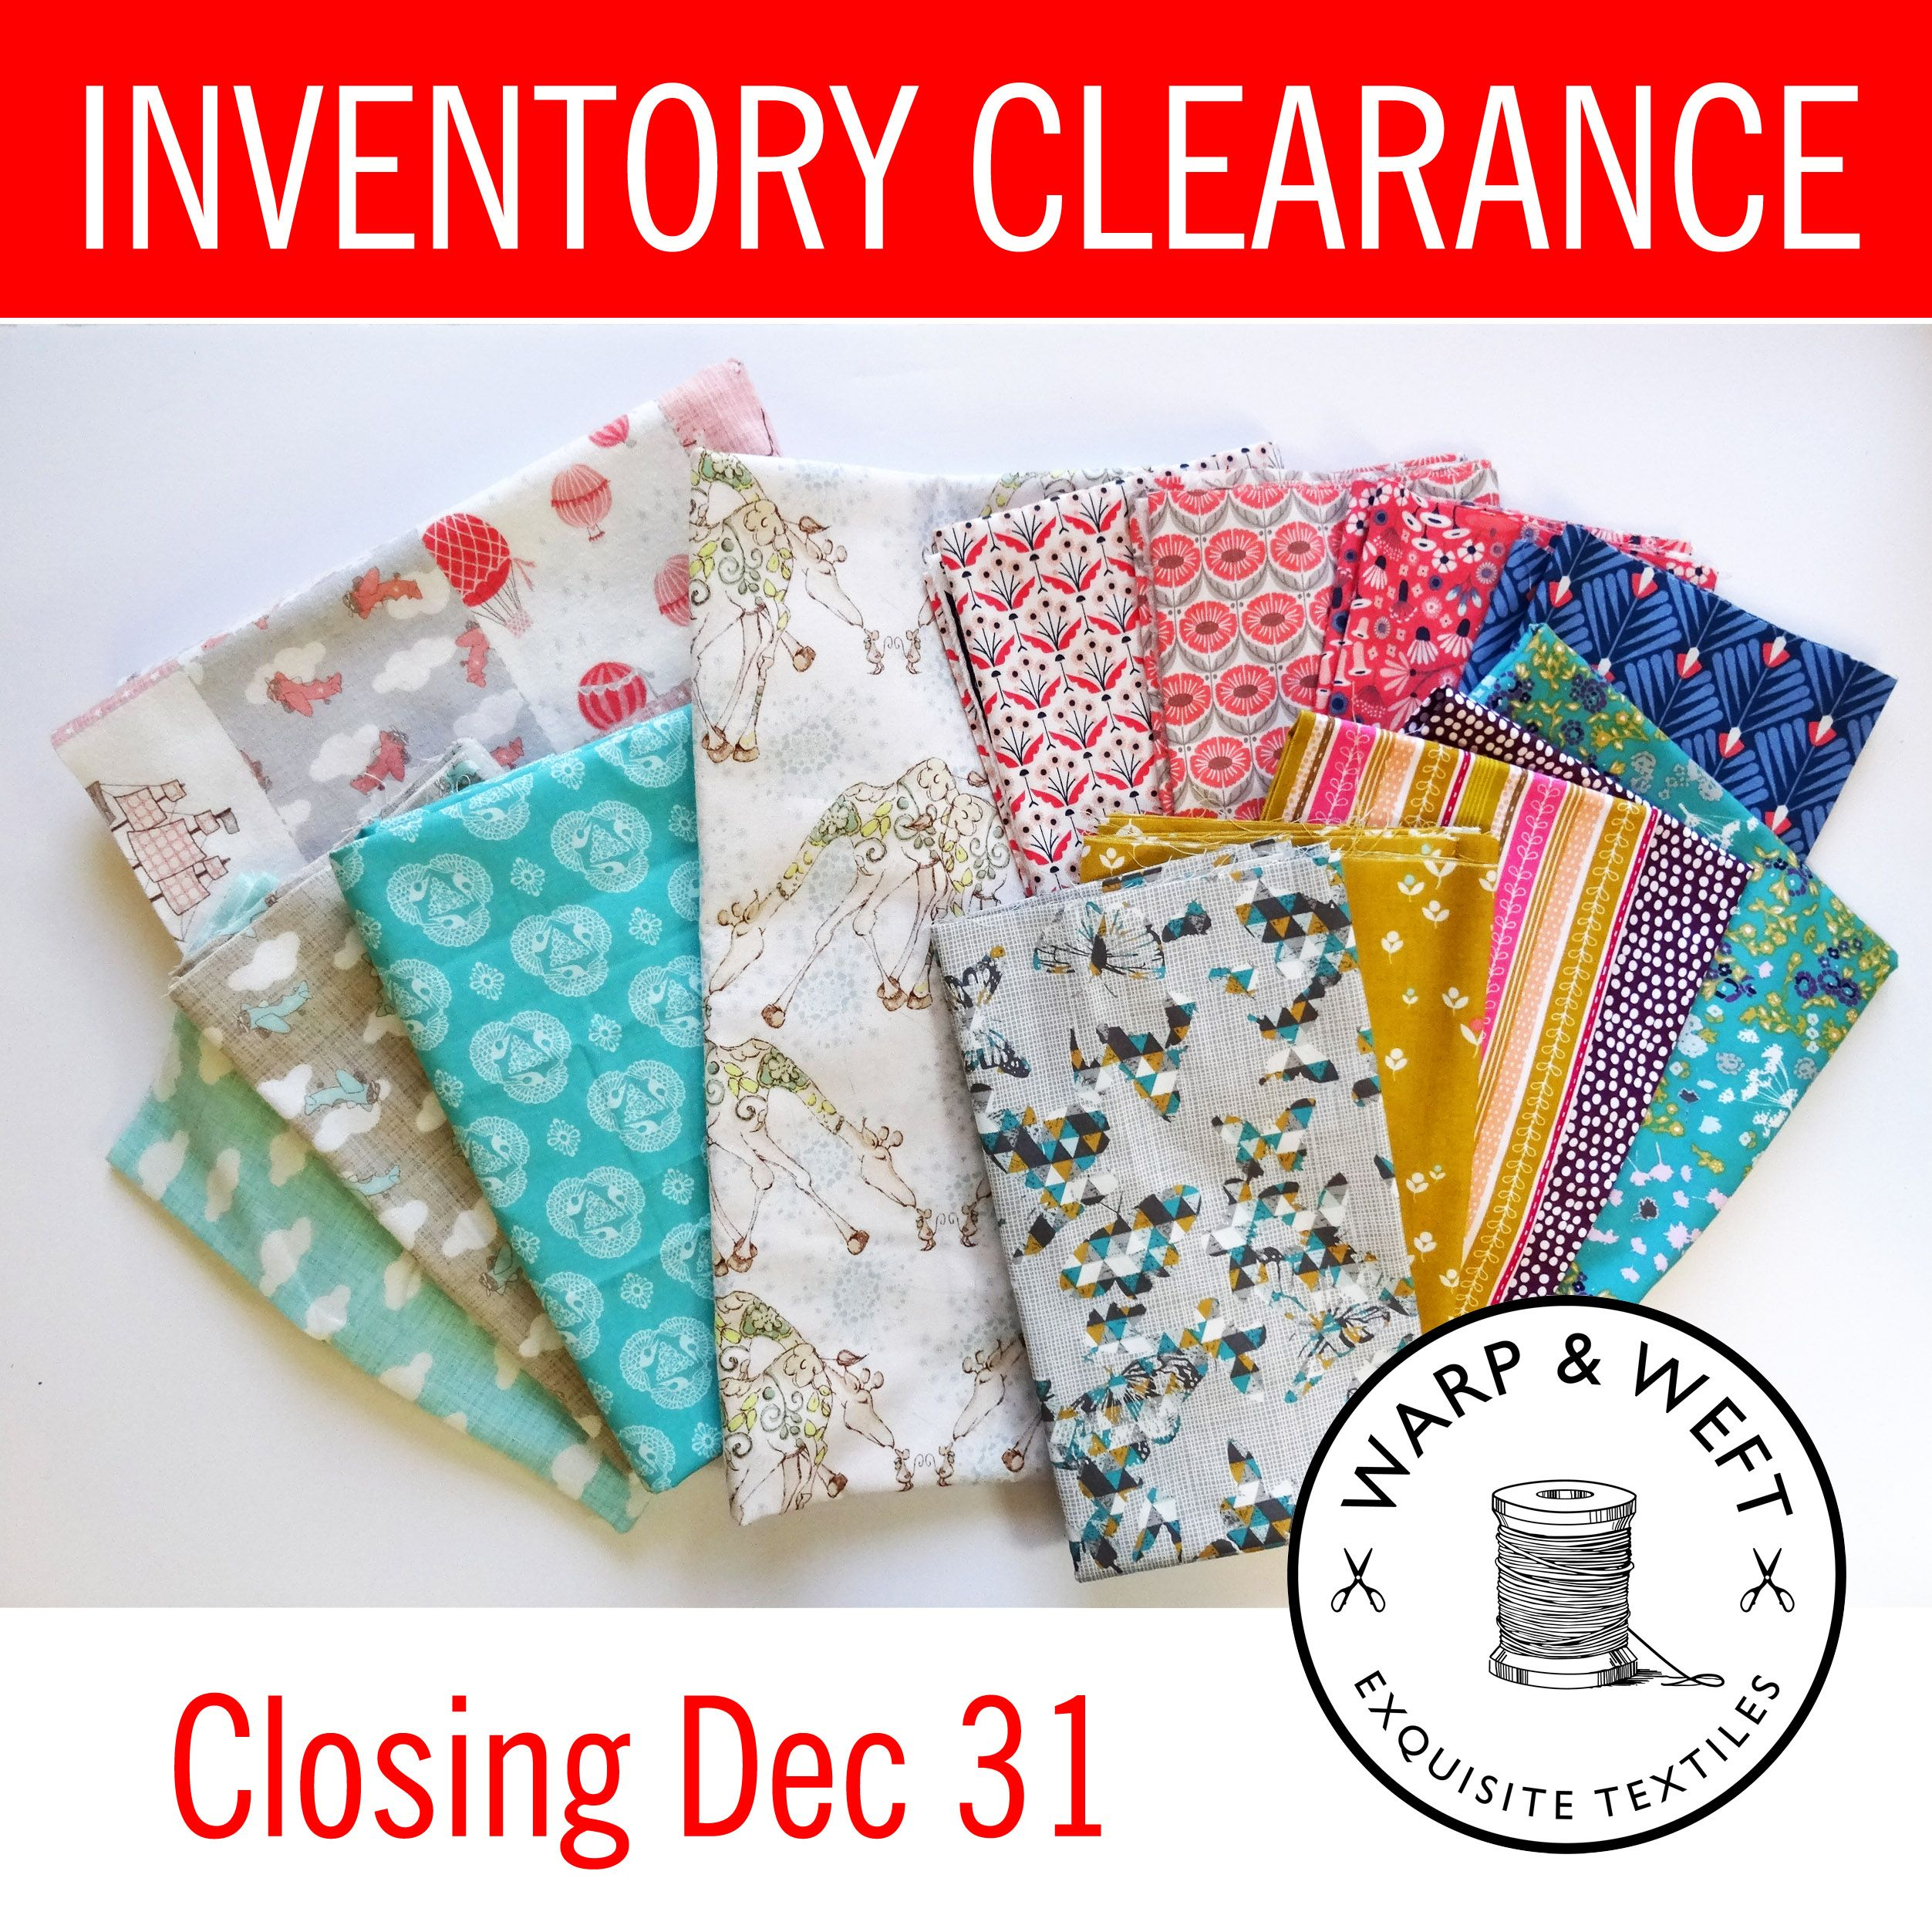 @warpandweftca is closing its doors! Click over for some great deals as they clear out their inventory. https://www.warpandweft.ca/